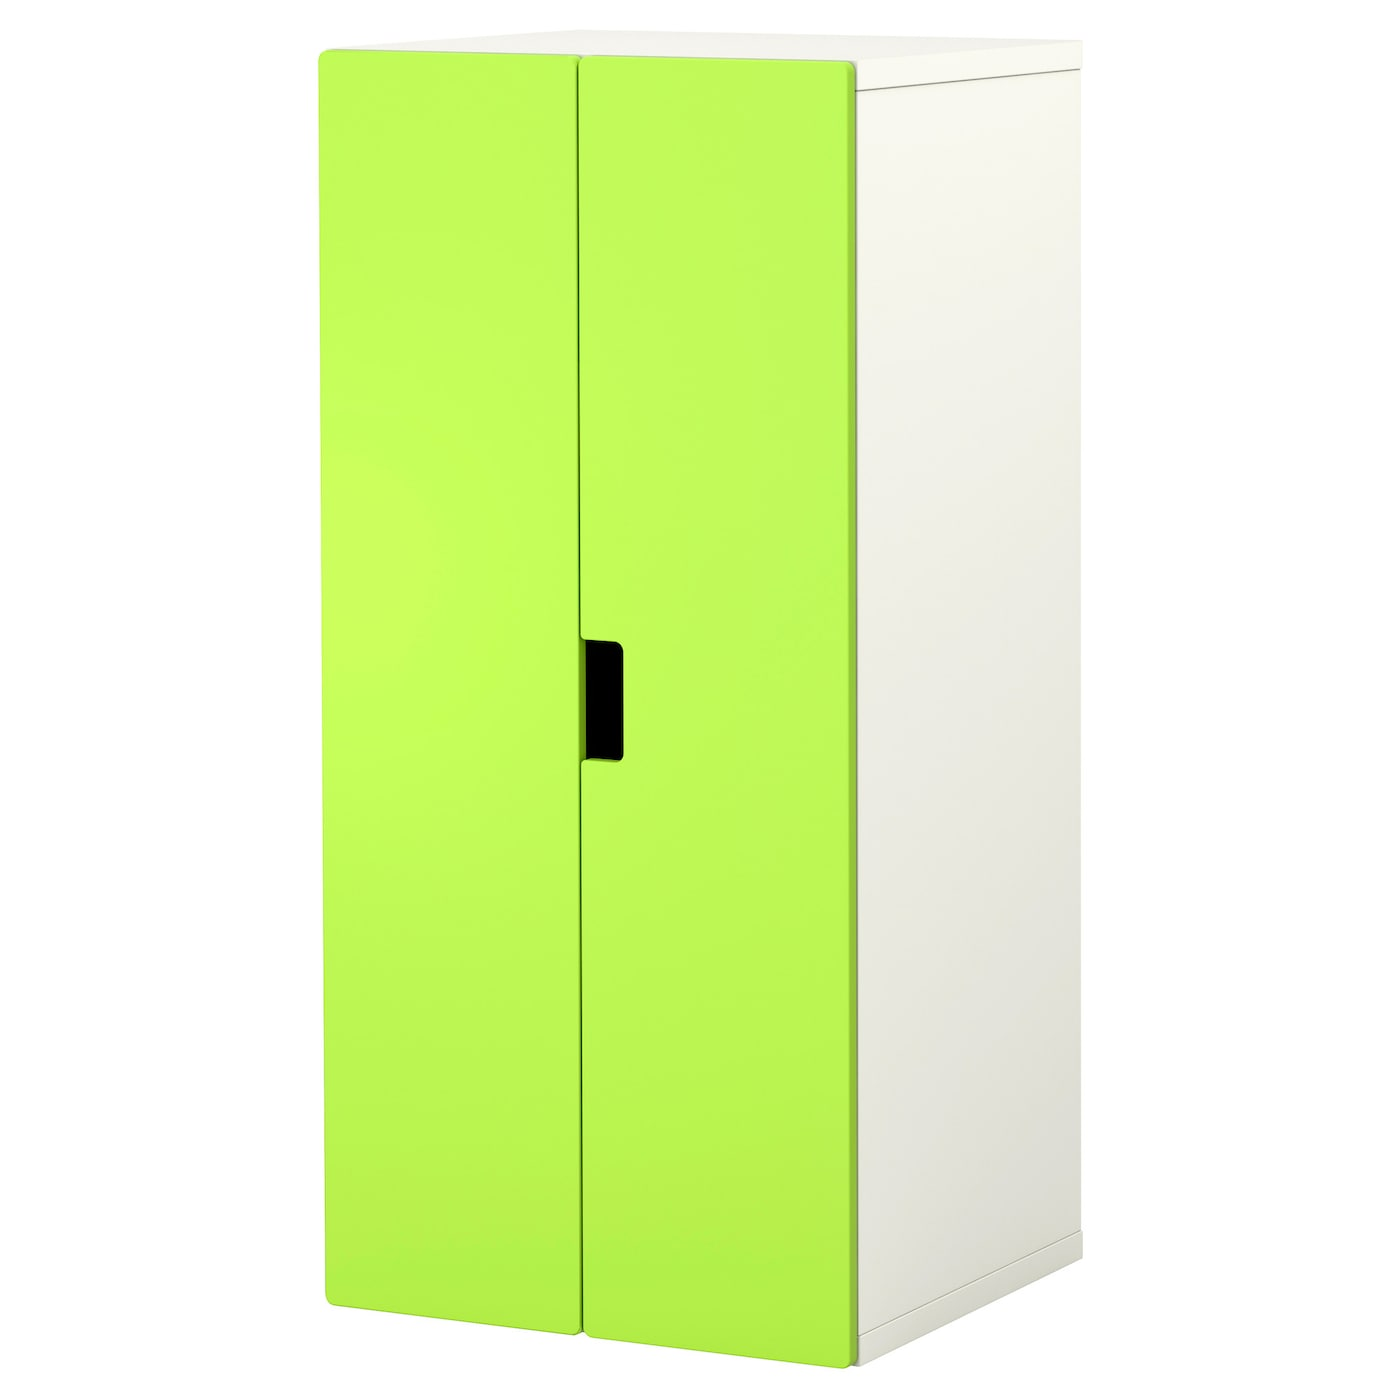 Stuva Storage Combination With Doors White Green 60x50x128